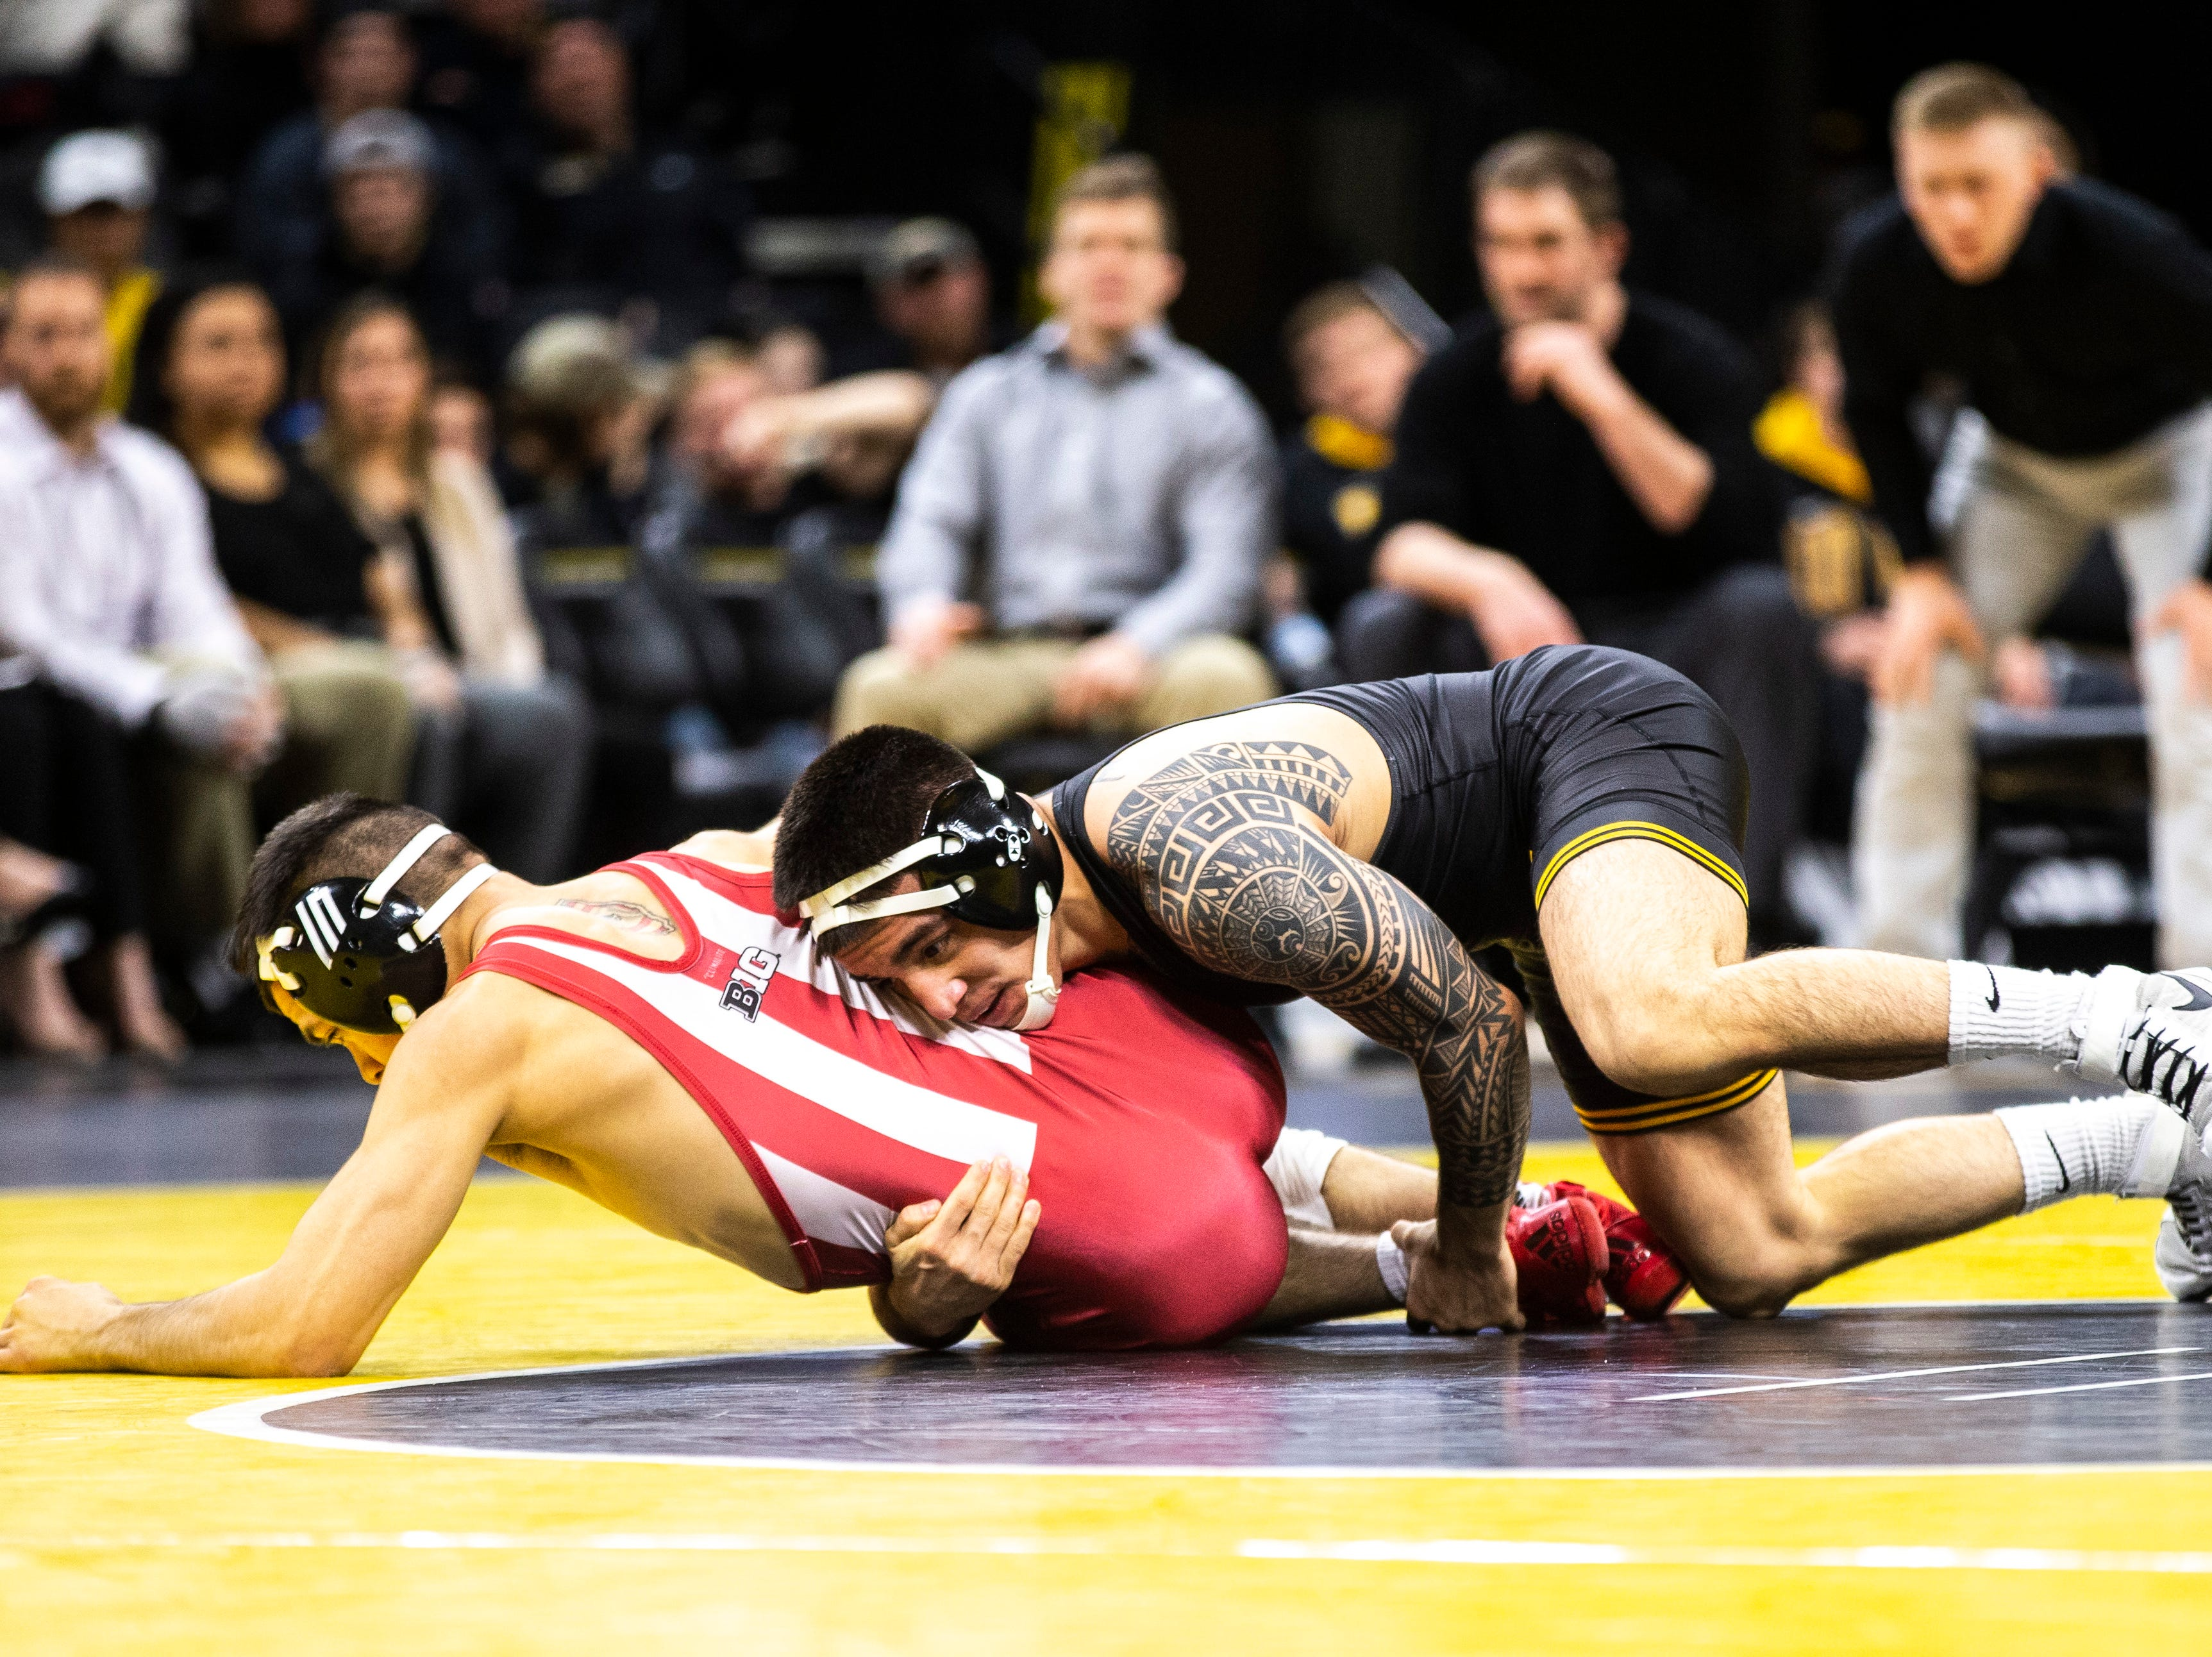 Iowa's Pat Lugo, right, wrestles Indiana's Fernie Luigs at 149 during a NCAA Big Ten Conference wrestling dual on Friday, Feb. 15, 2019 at Carver-Hawkeye Arena in Iowa City, Iowa.